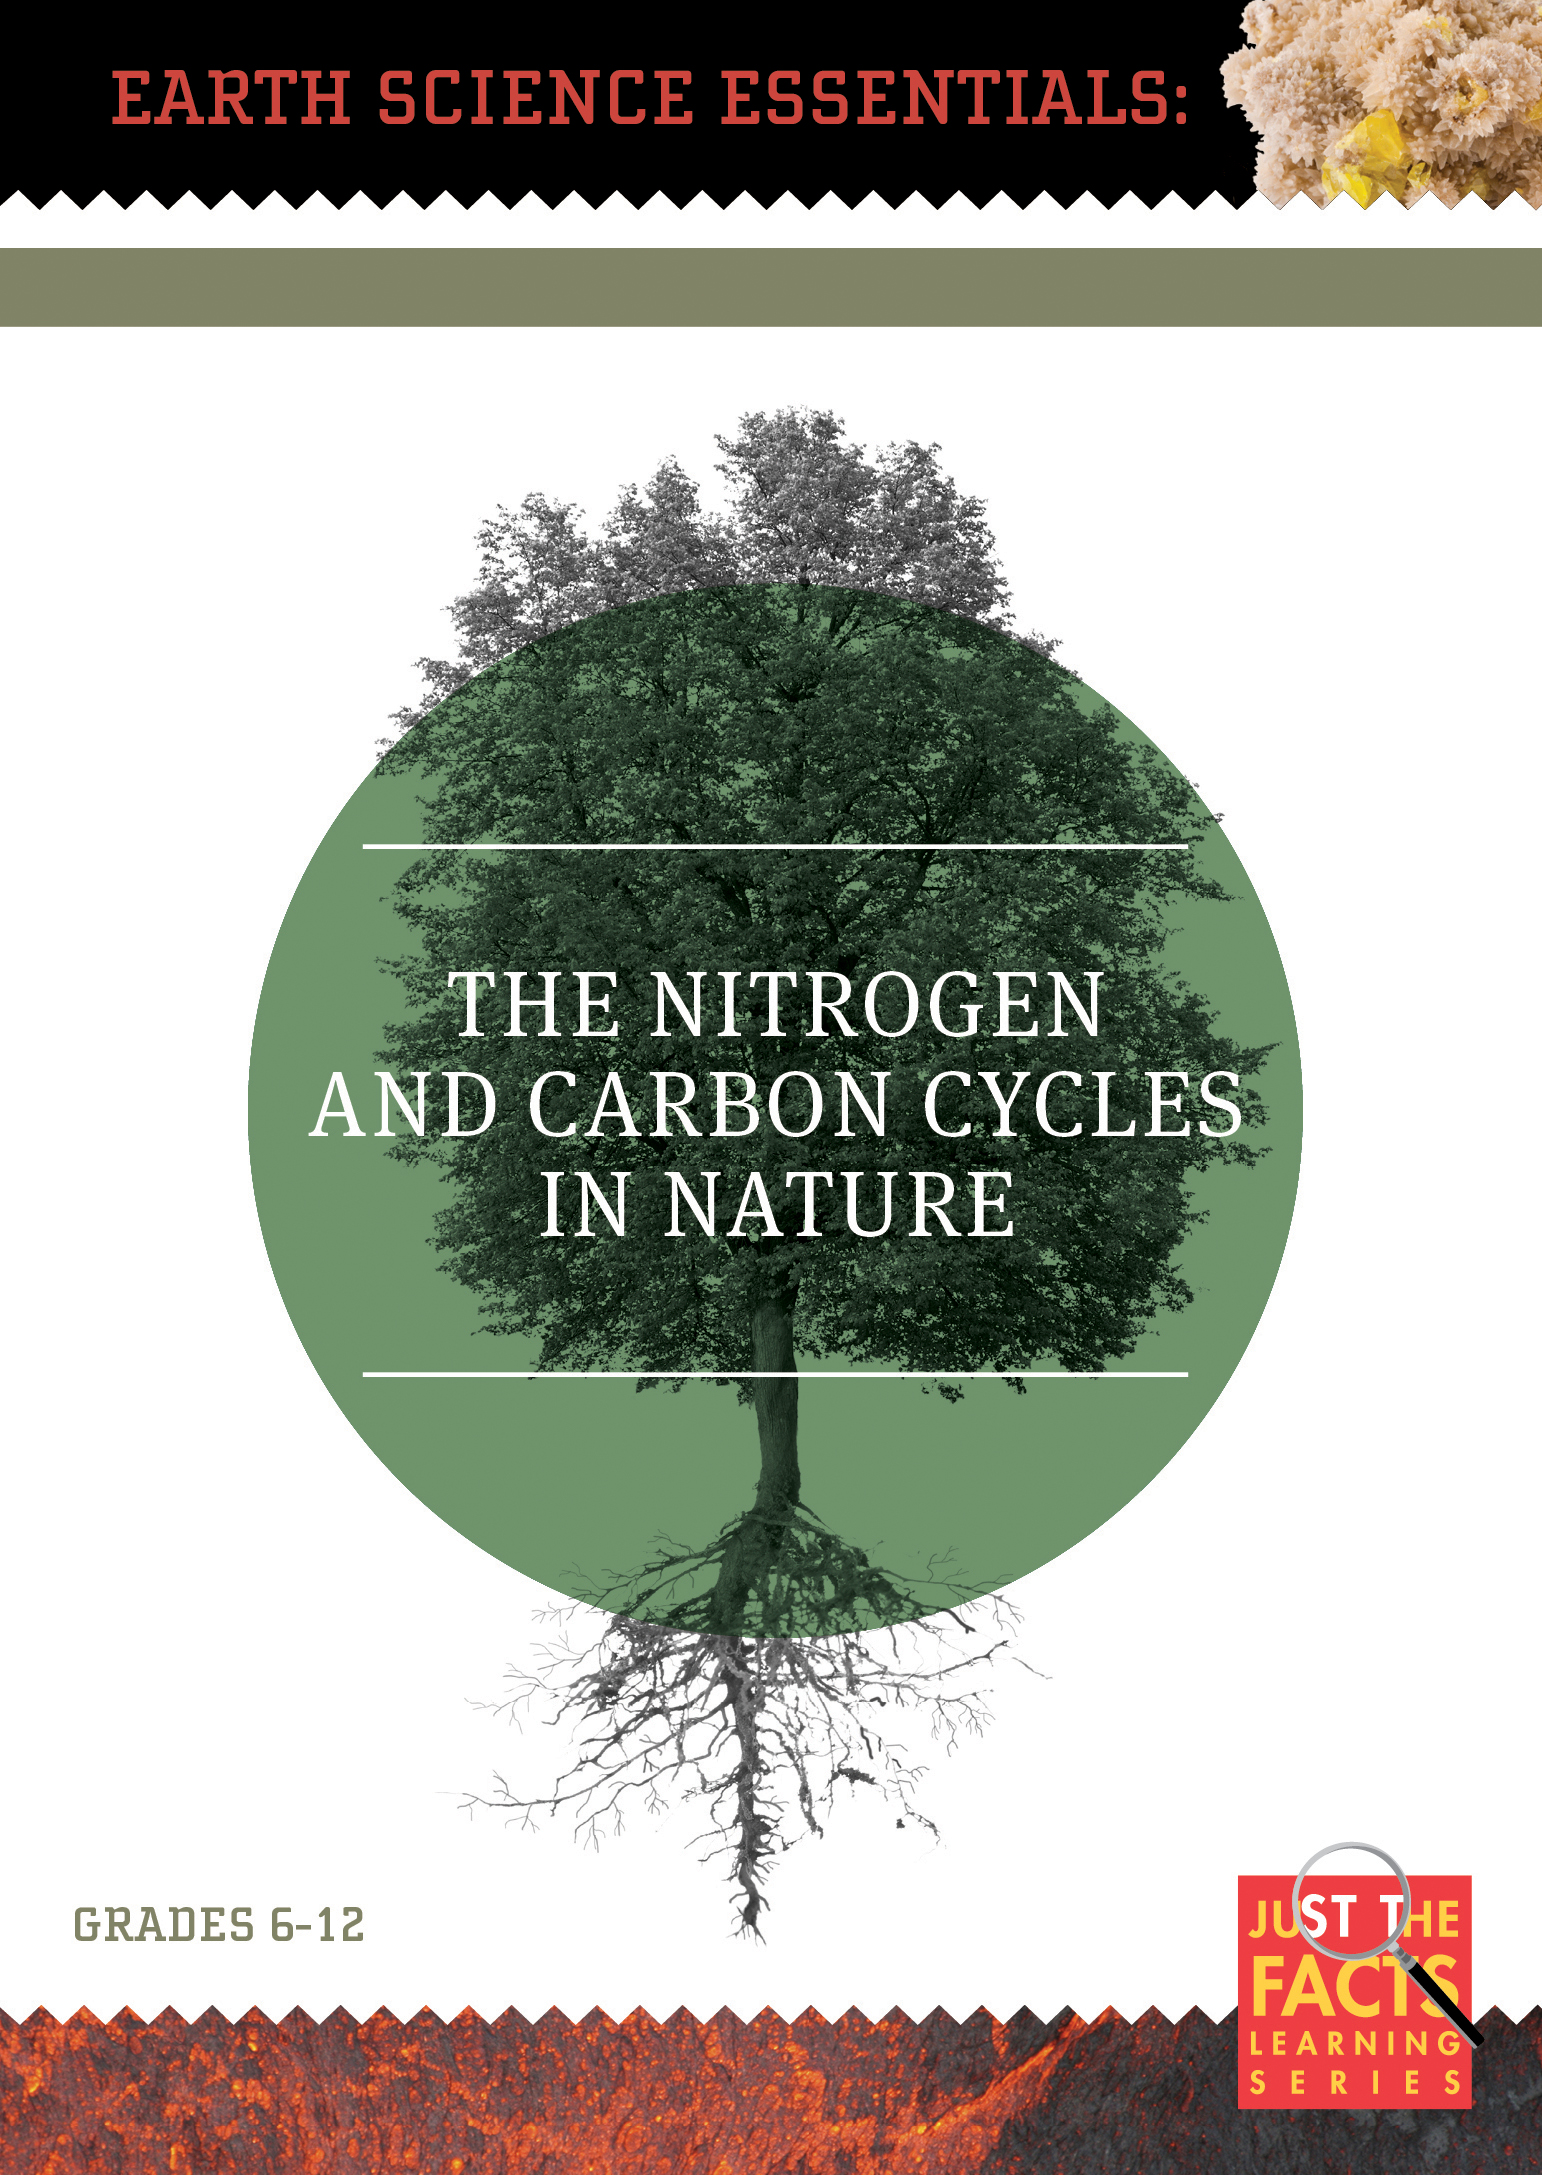 Earth Science Essentials: Nitrogen and Carbon Cycles